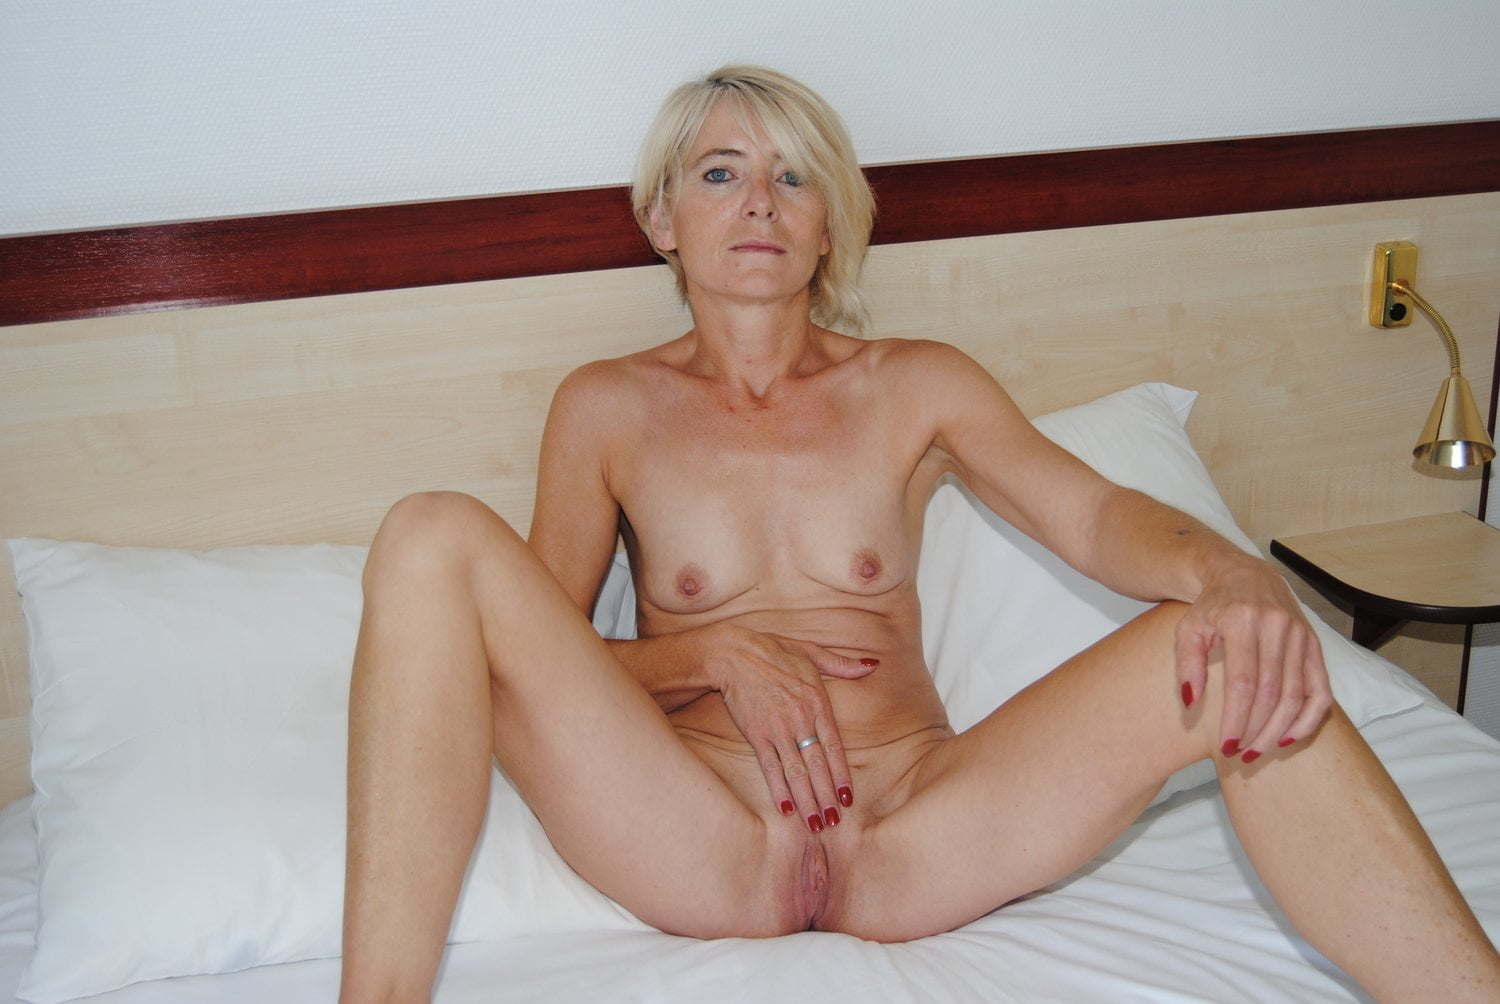 this amateur cronys wife sucking my cock lily really. agree